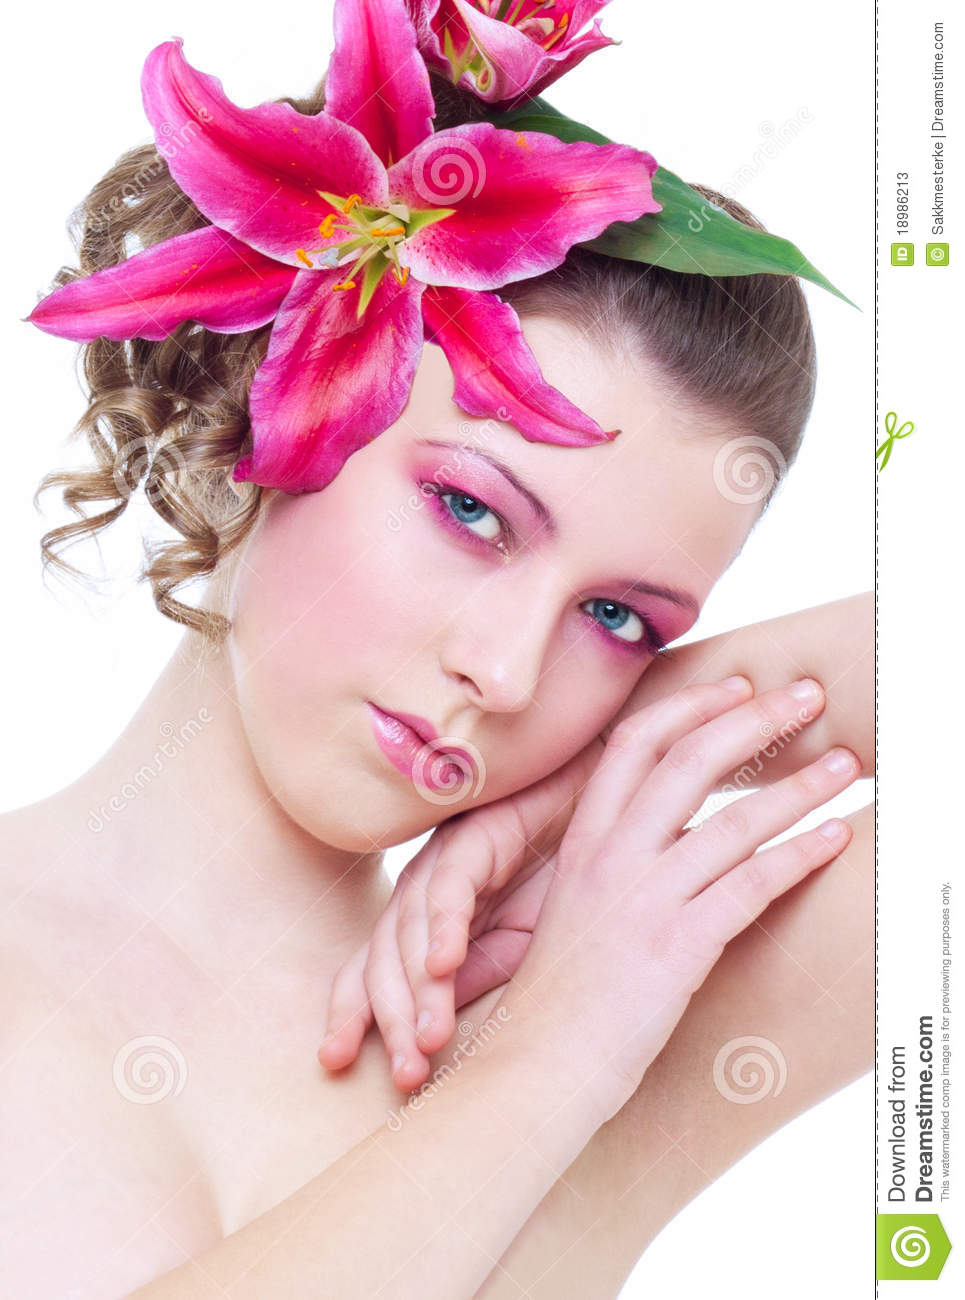 Woman With Pink Flower In Hair Stock Image Image Of Posing Leans